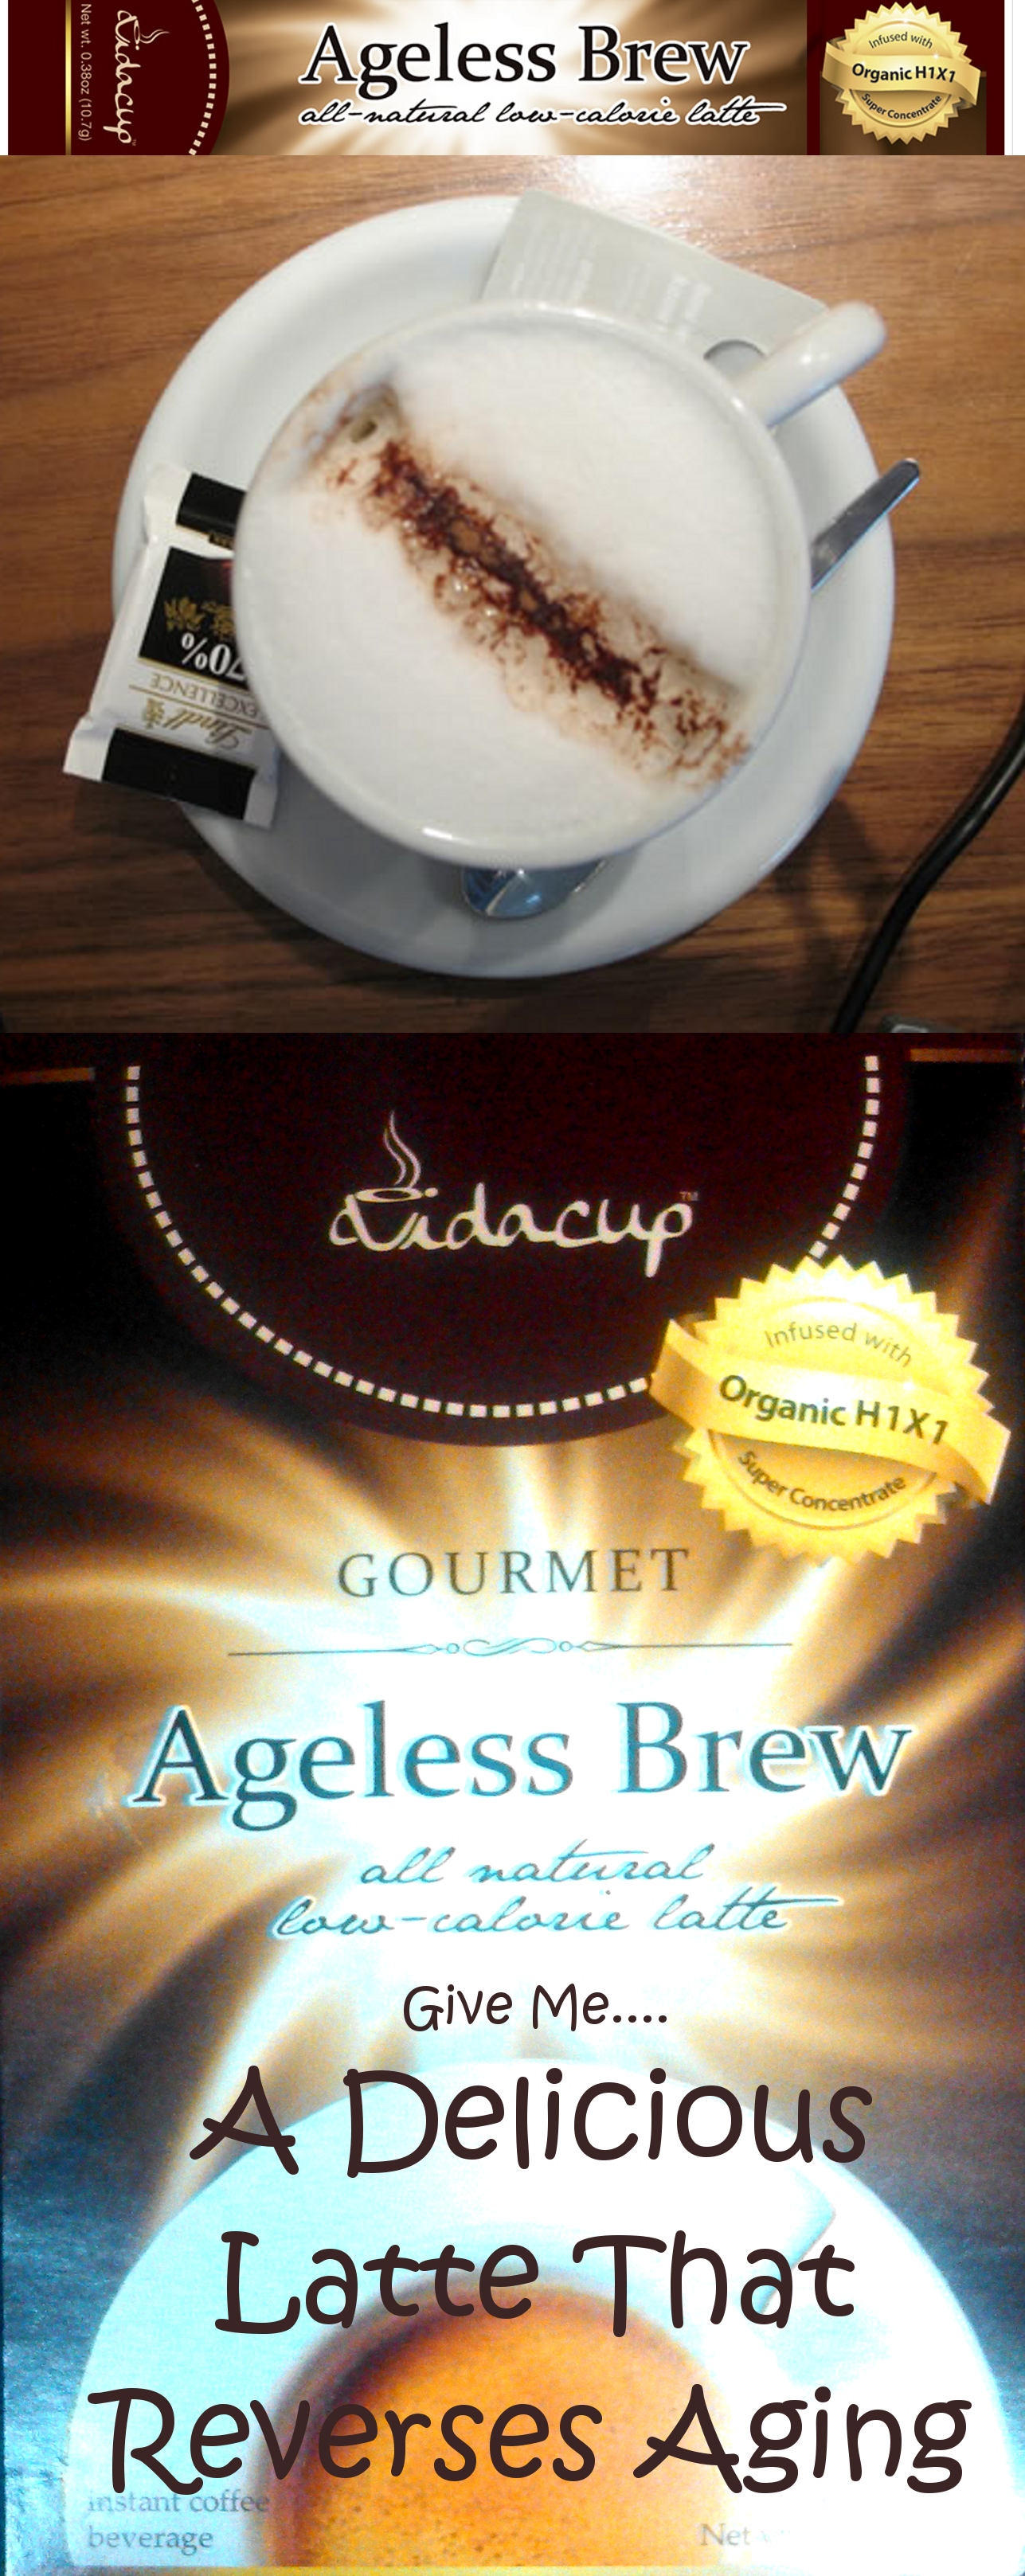 Imagine A Coffee That Reverses The Signs Of Aging From How You Feel